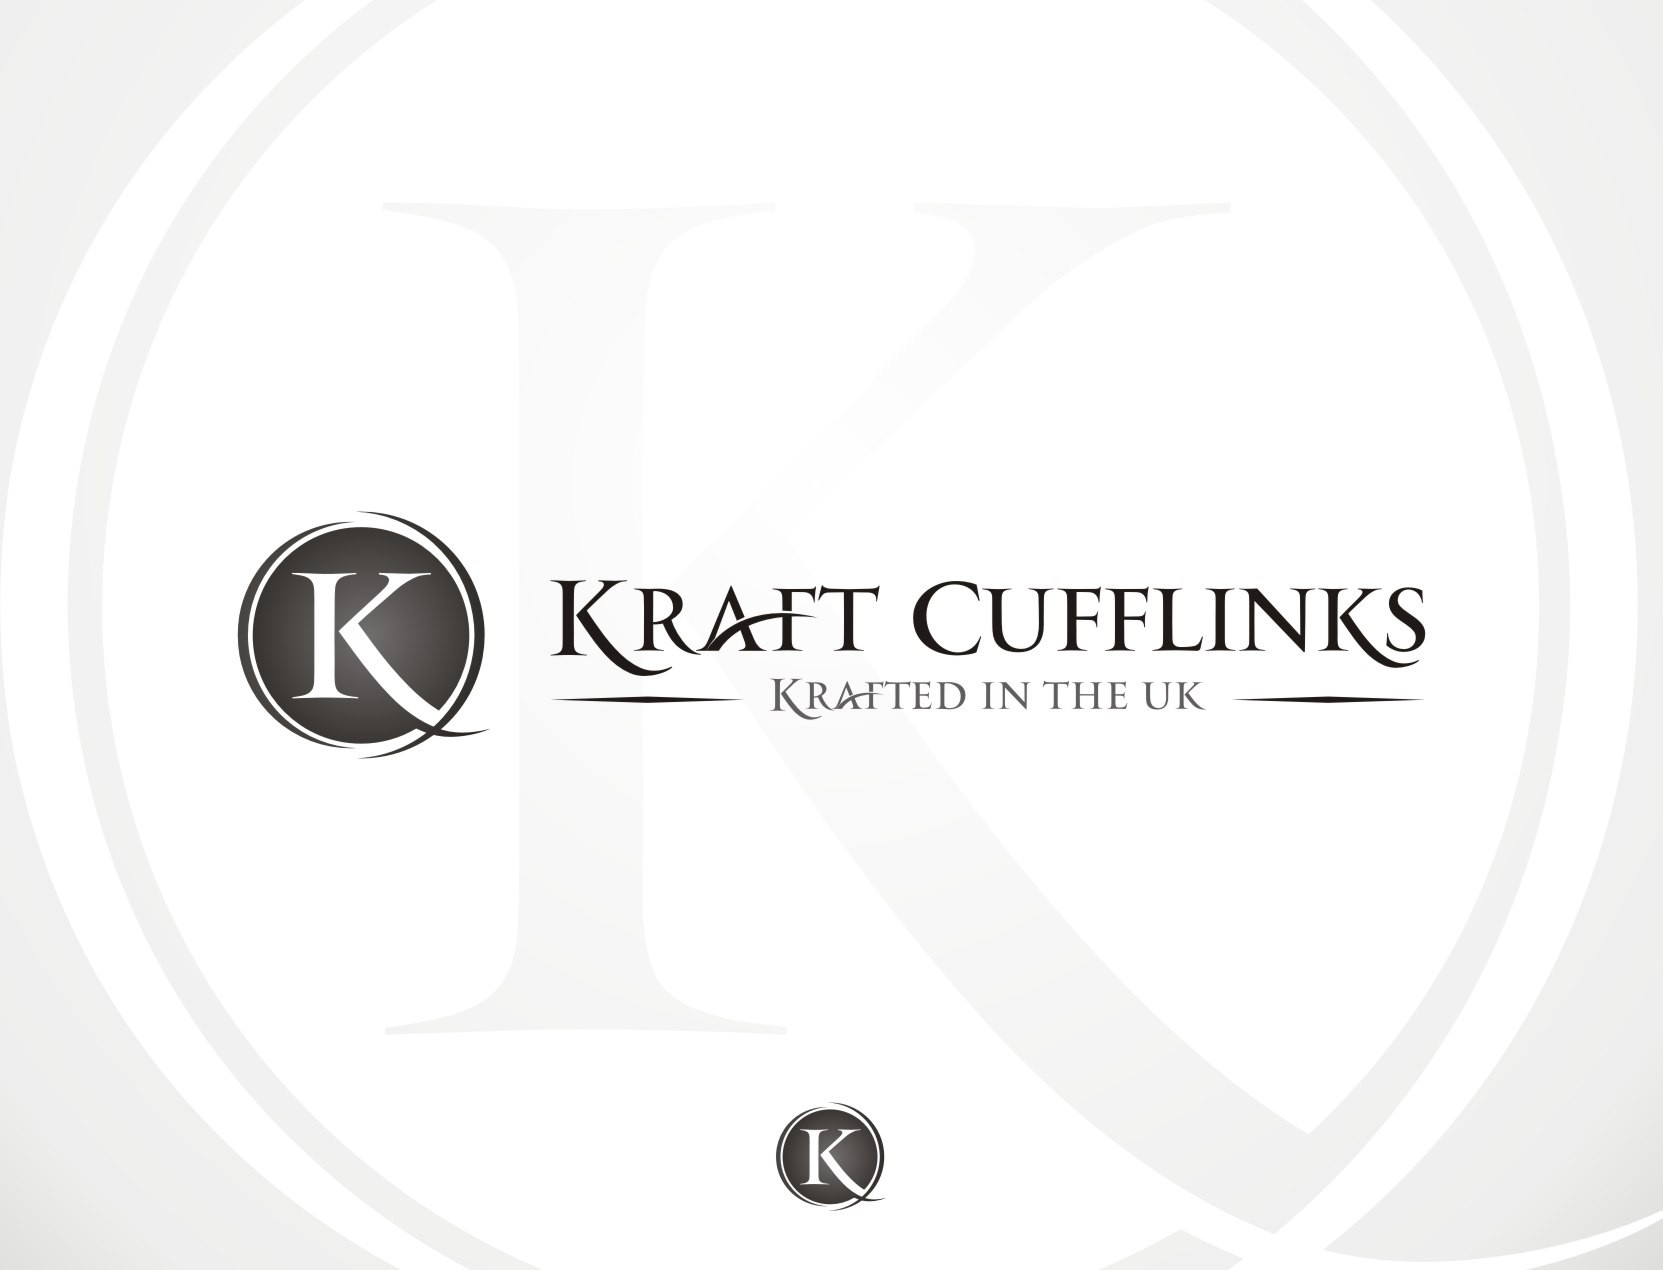 Create our NEW logo for Kraft Cufflinks